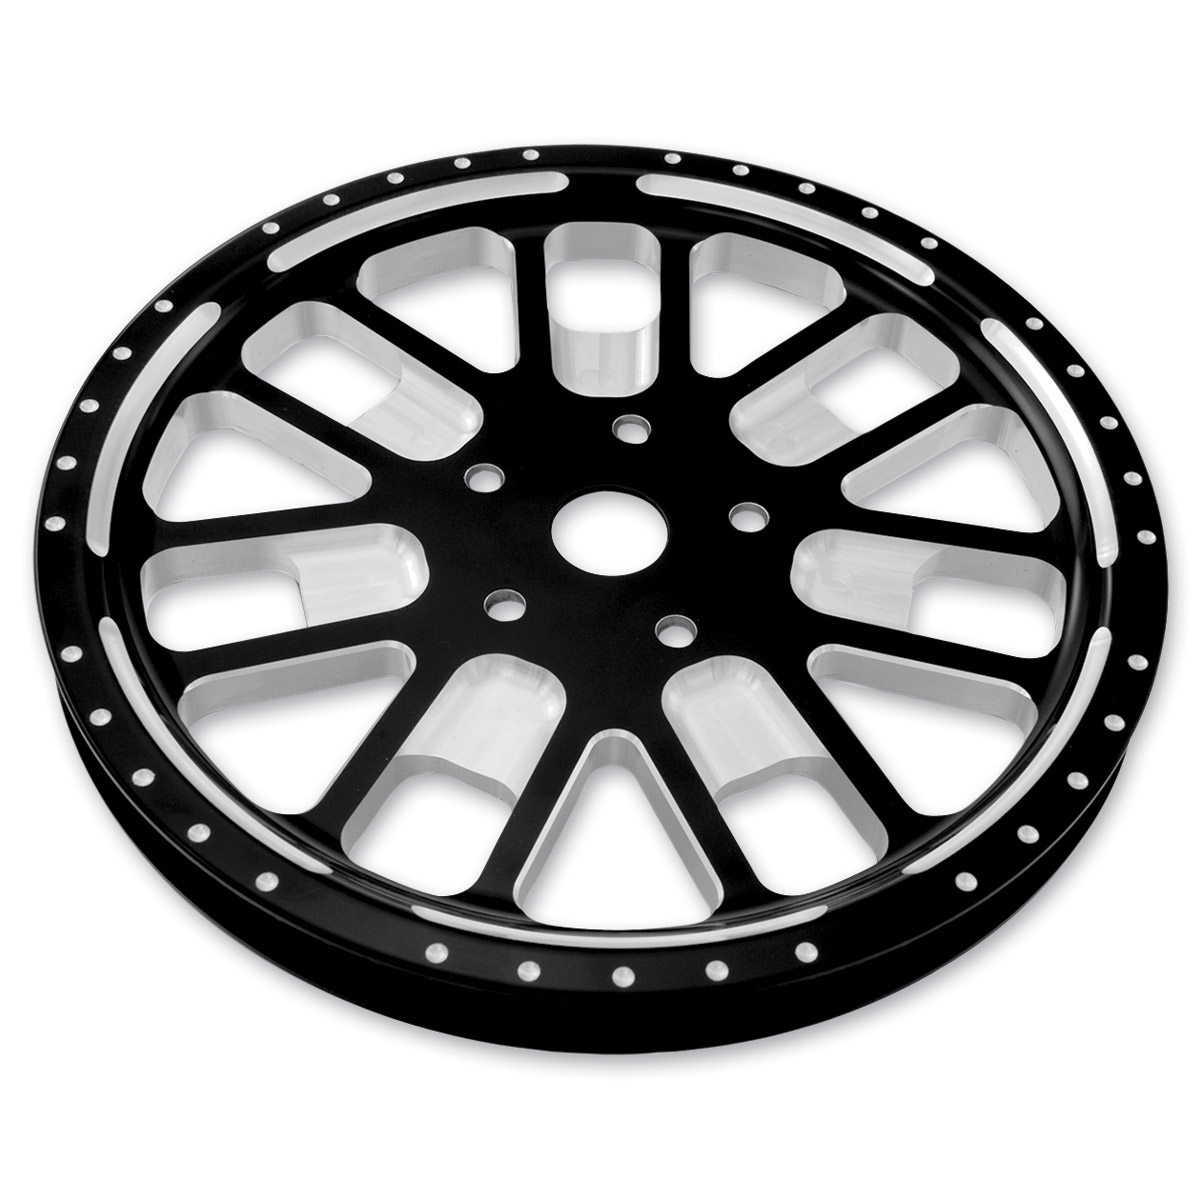 Roland Sands Design Slam Contrast Cut 70T Forged Aluminum Pulley